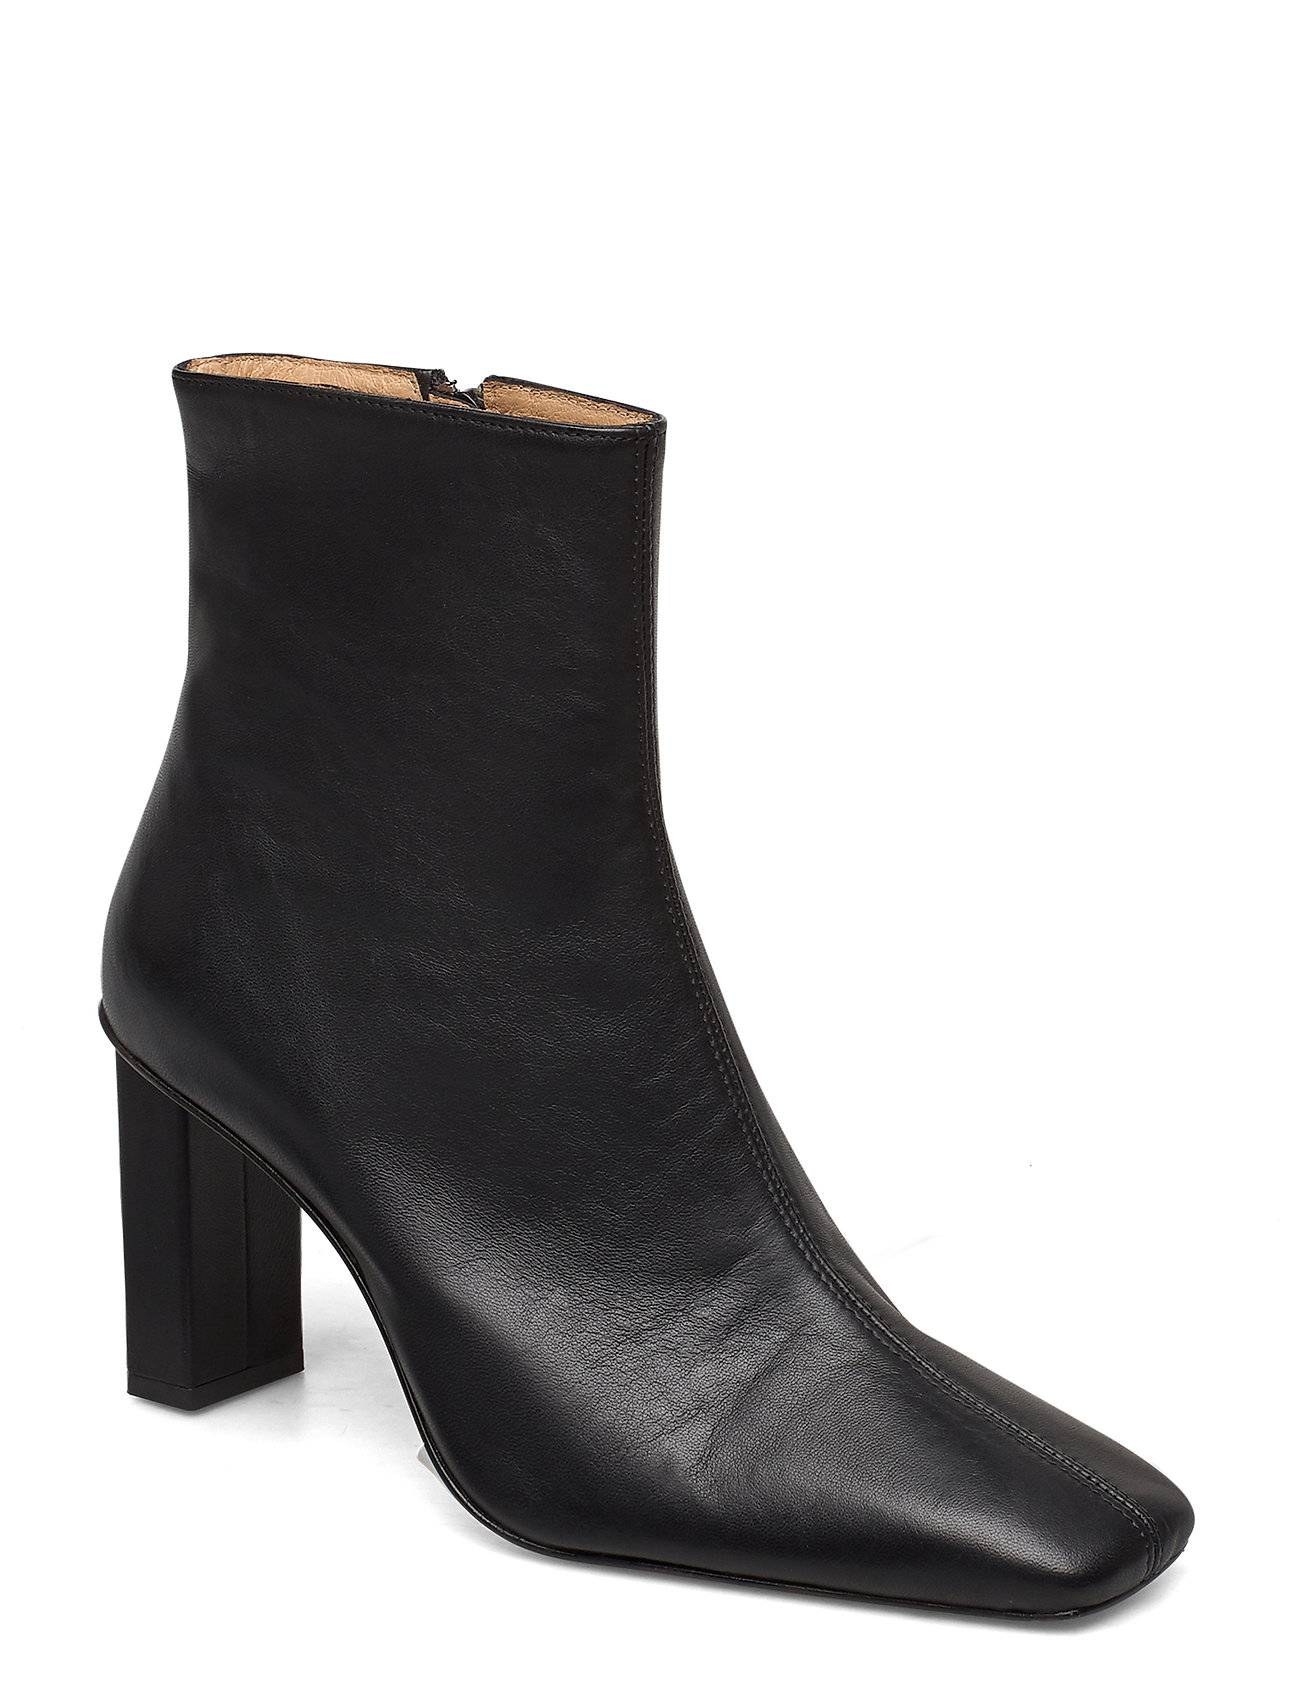 ANNY NORD Joan Le CarrÉ Ankle Boot Shoes Boots Ankle Boots Ankle Boot - Heel Musta ANNY NORD